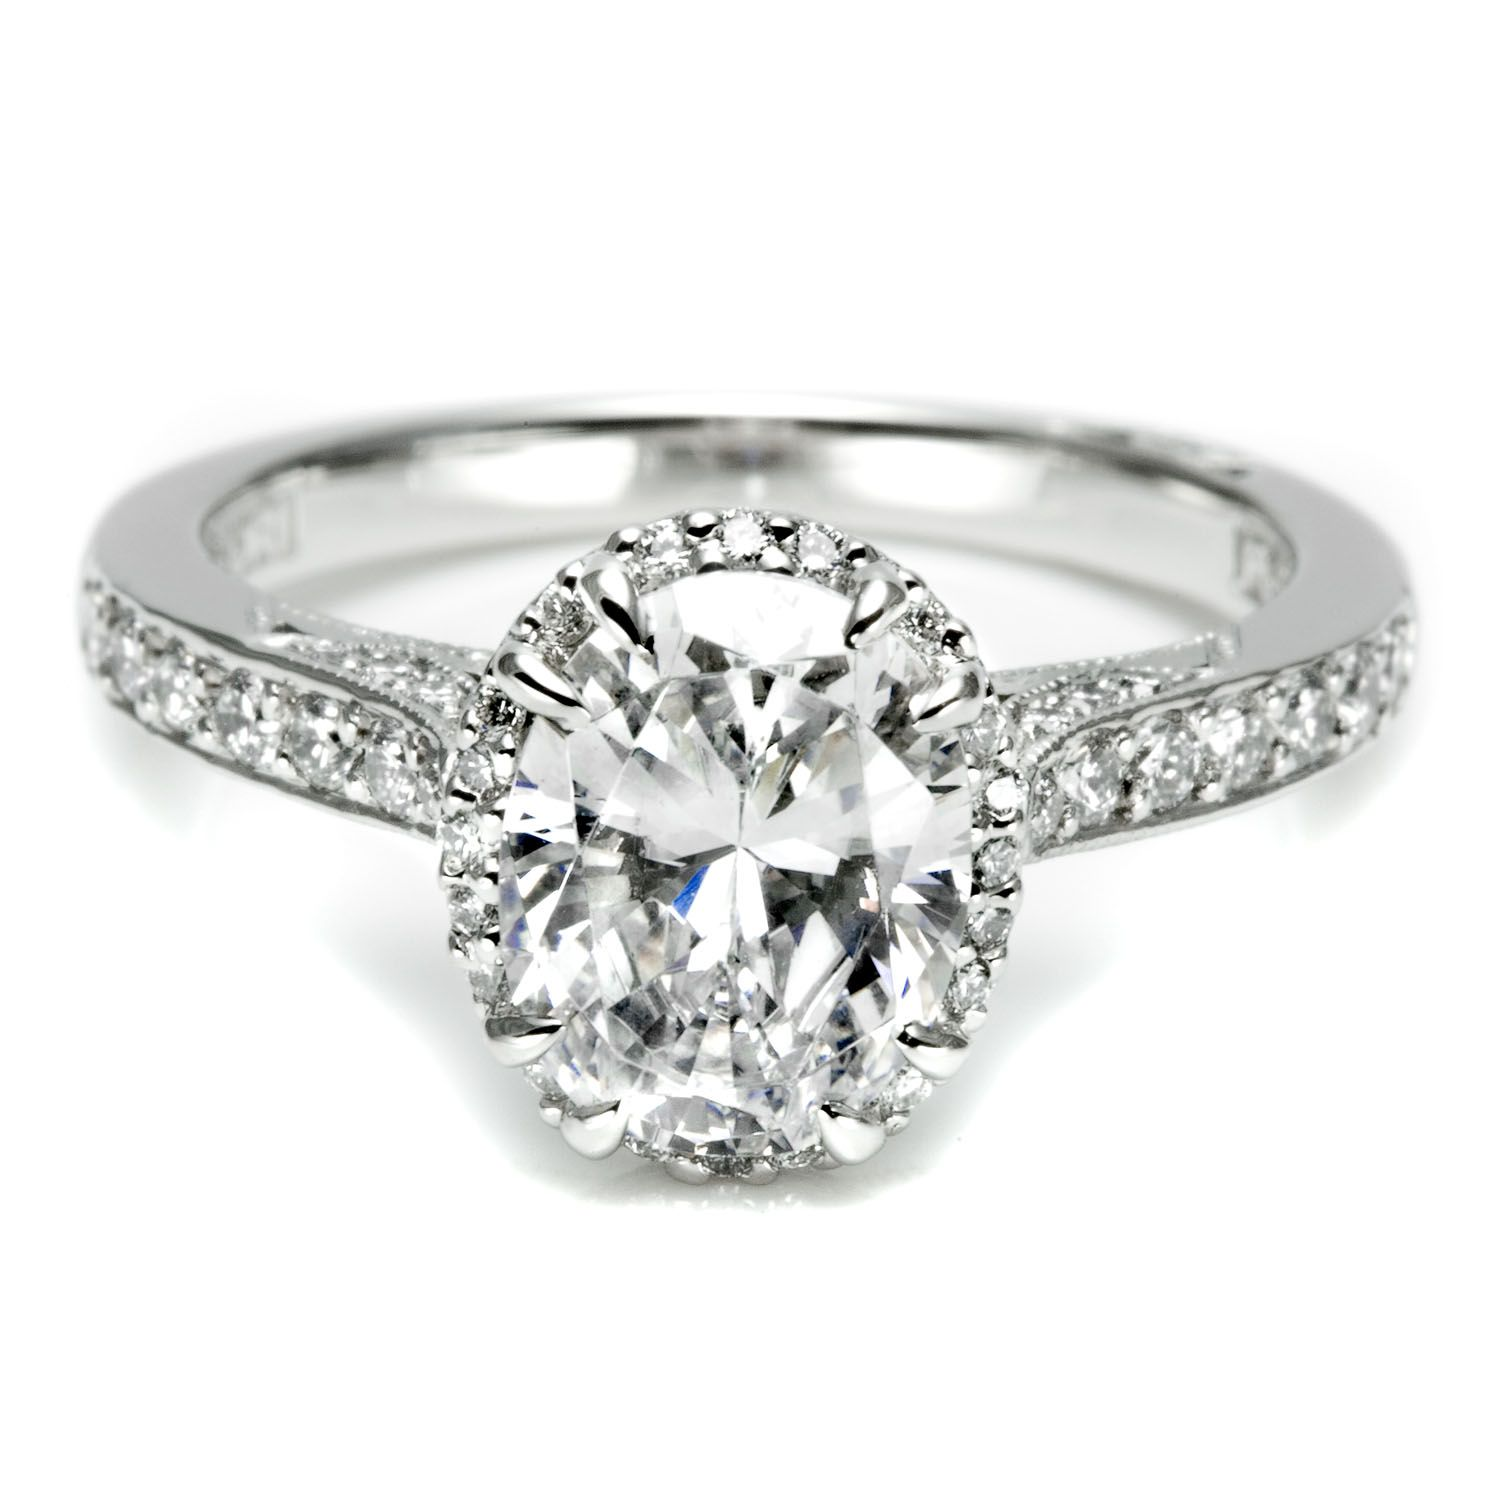 This is such a gorgeous engagement ring engagement rings